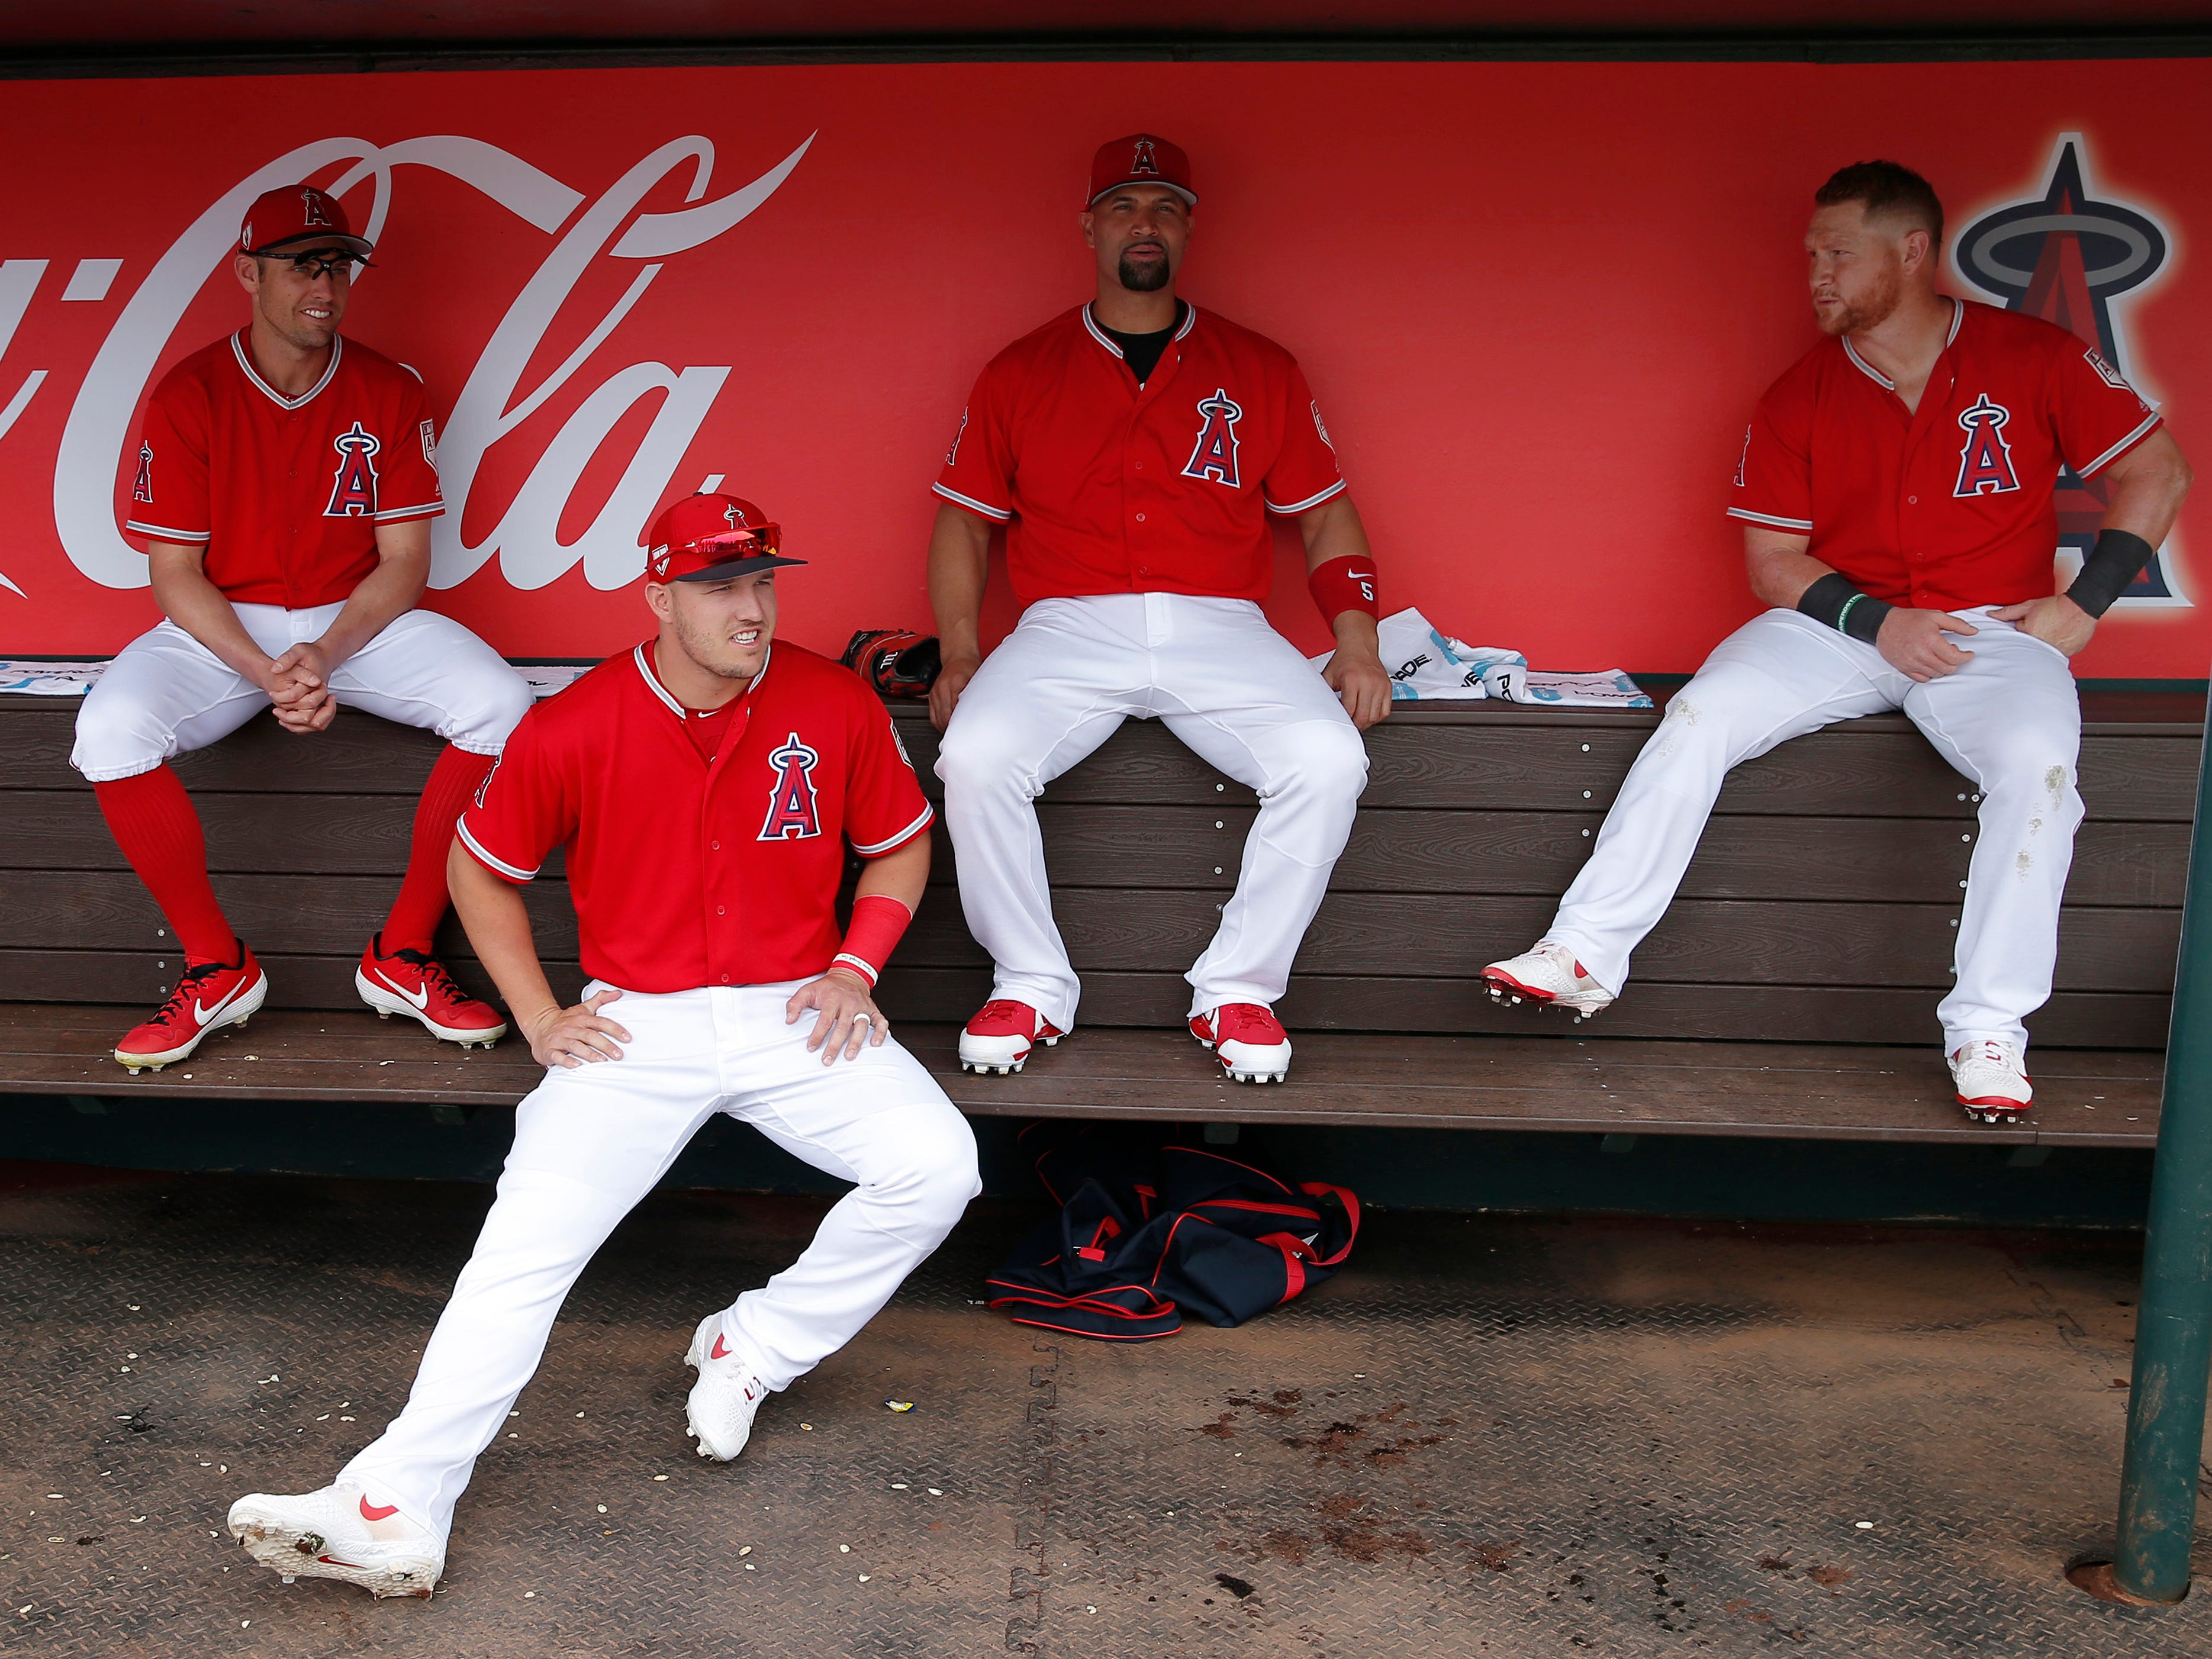 March 7: Angels' Peter Bourjos (left), Mike Trout (second from left), Albert Pujols (second from right) and Kole Calhoun (right) sit in the dugout before a spring game.